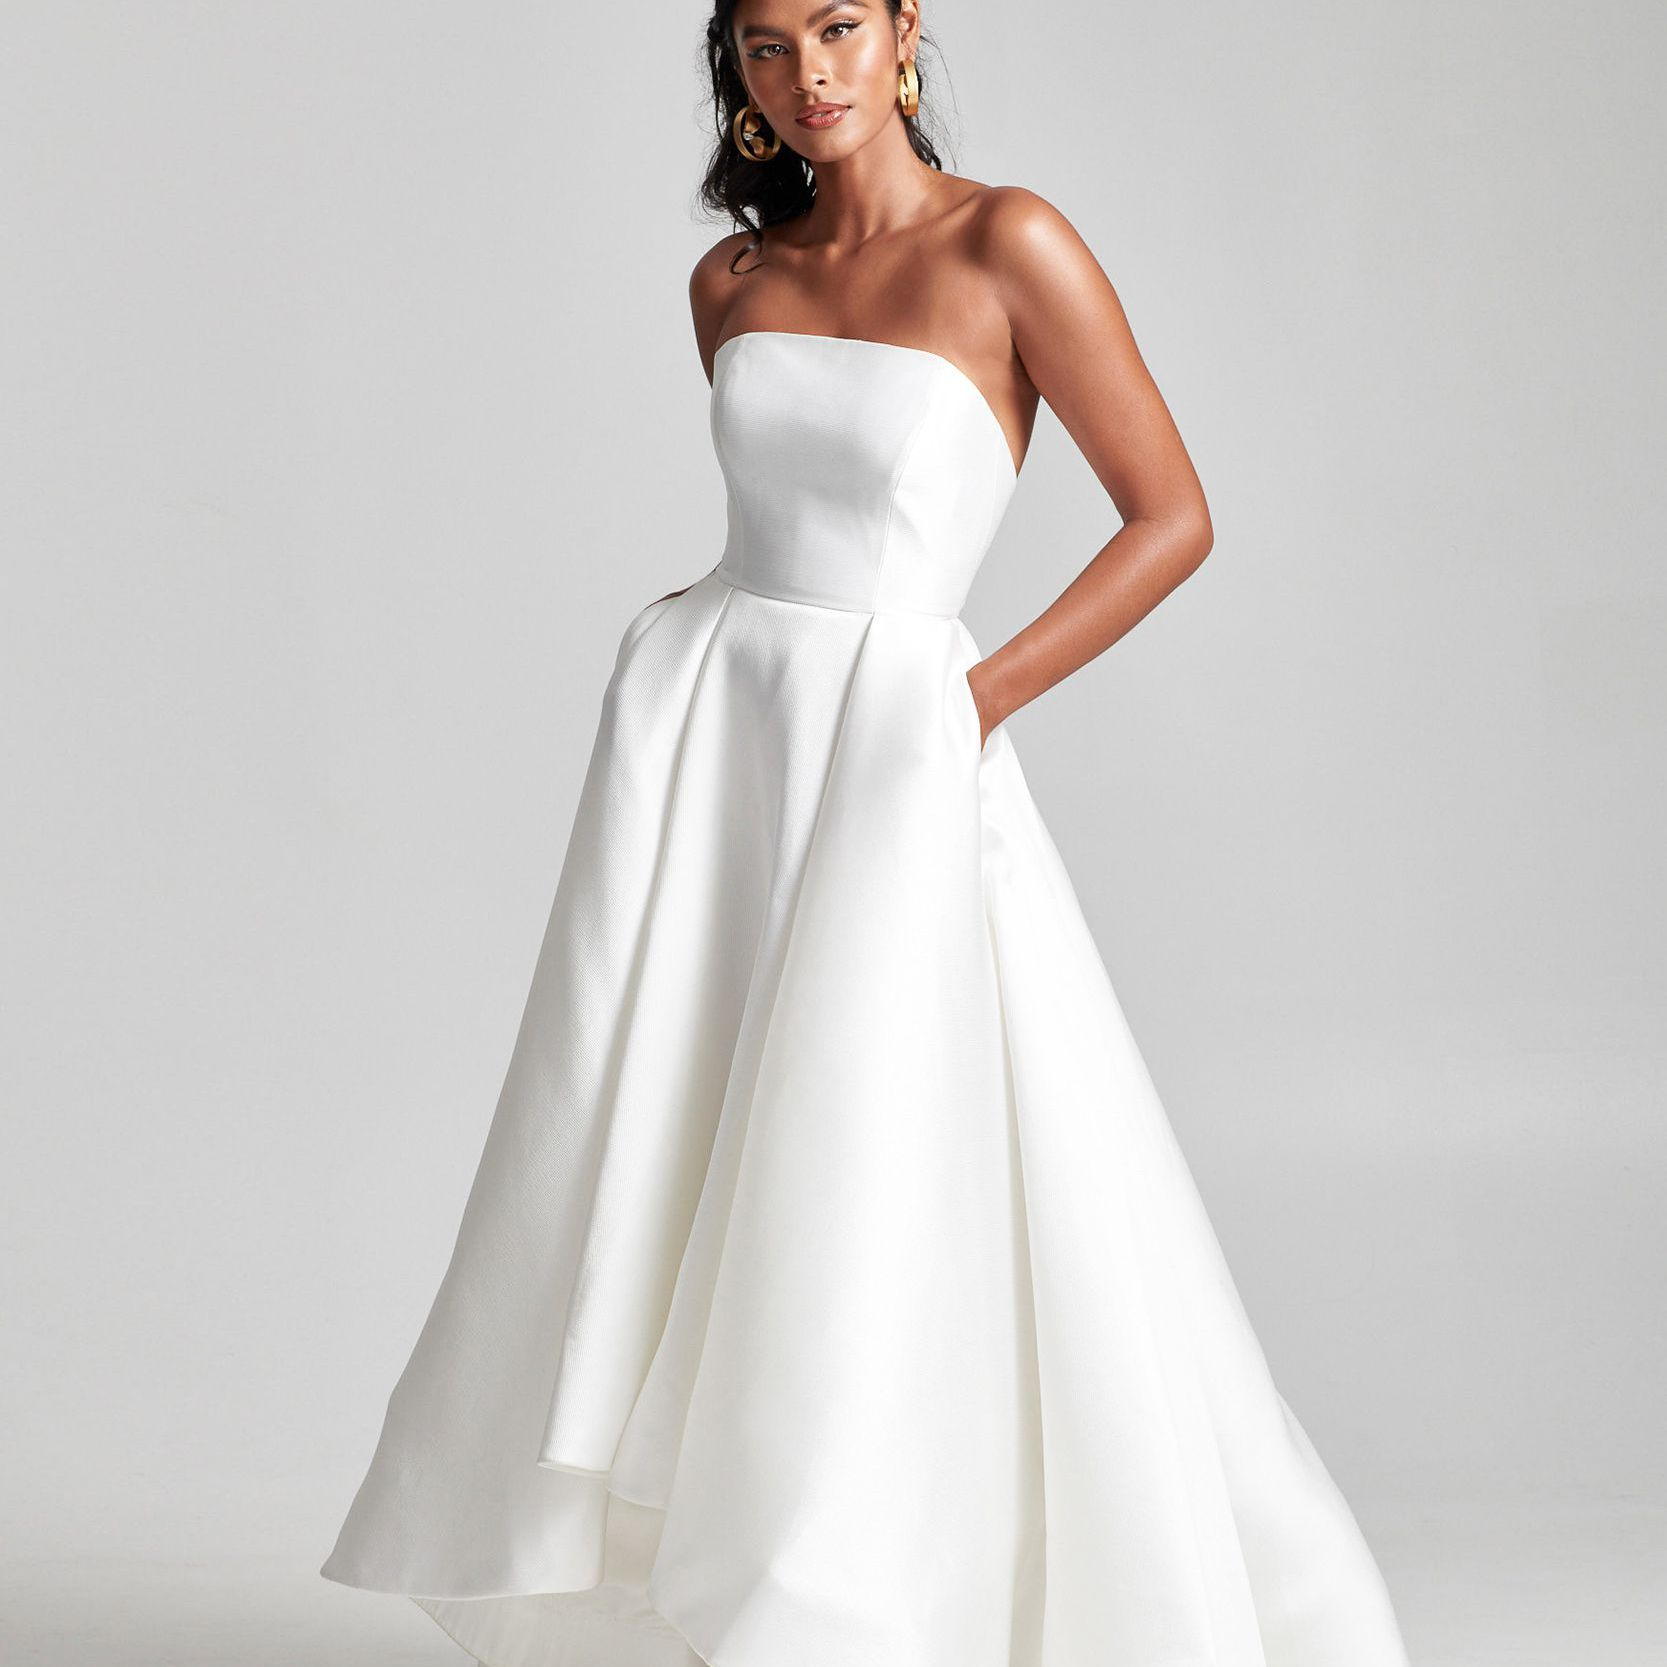 Model in strapless wedding gown with high-low skirt with pockets